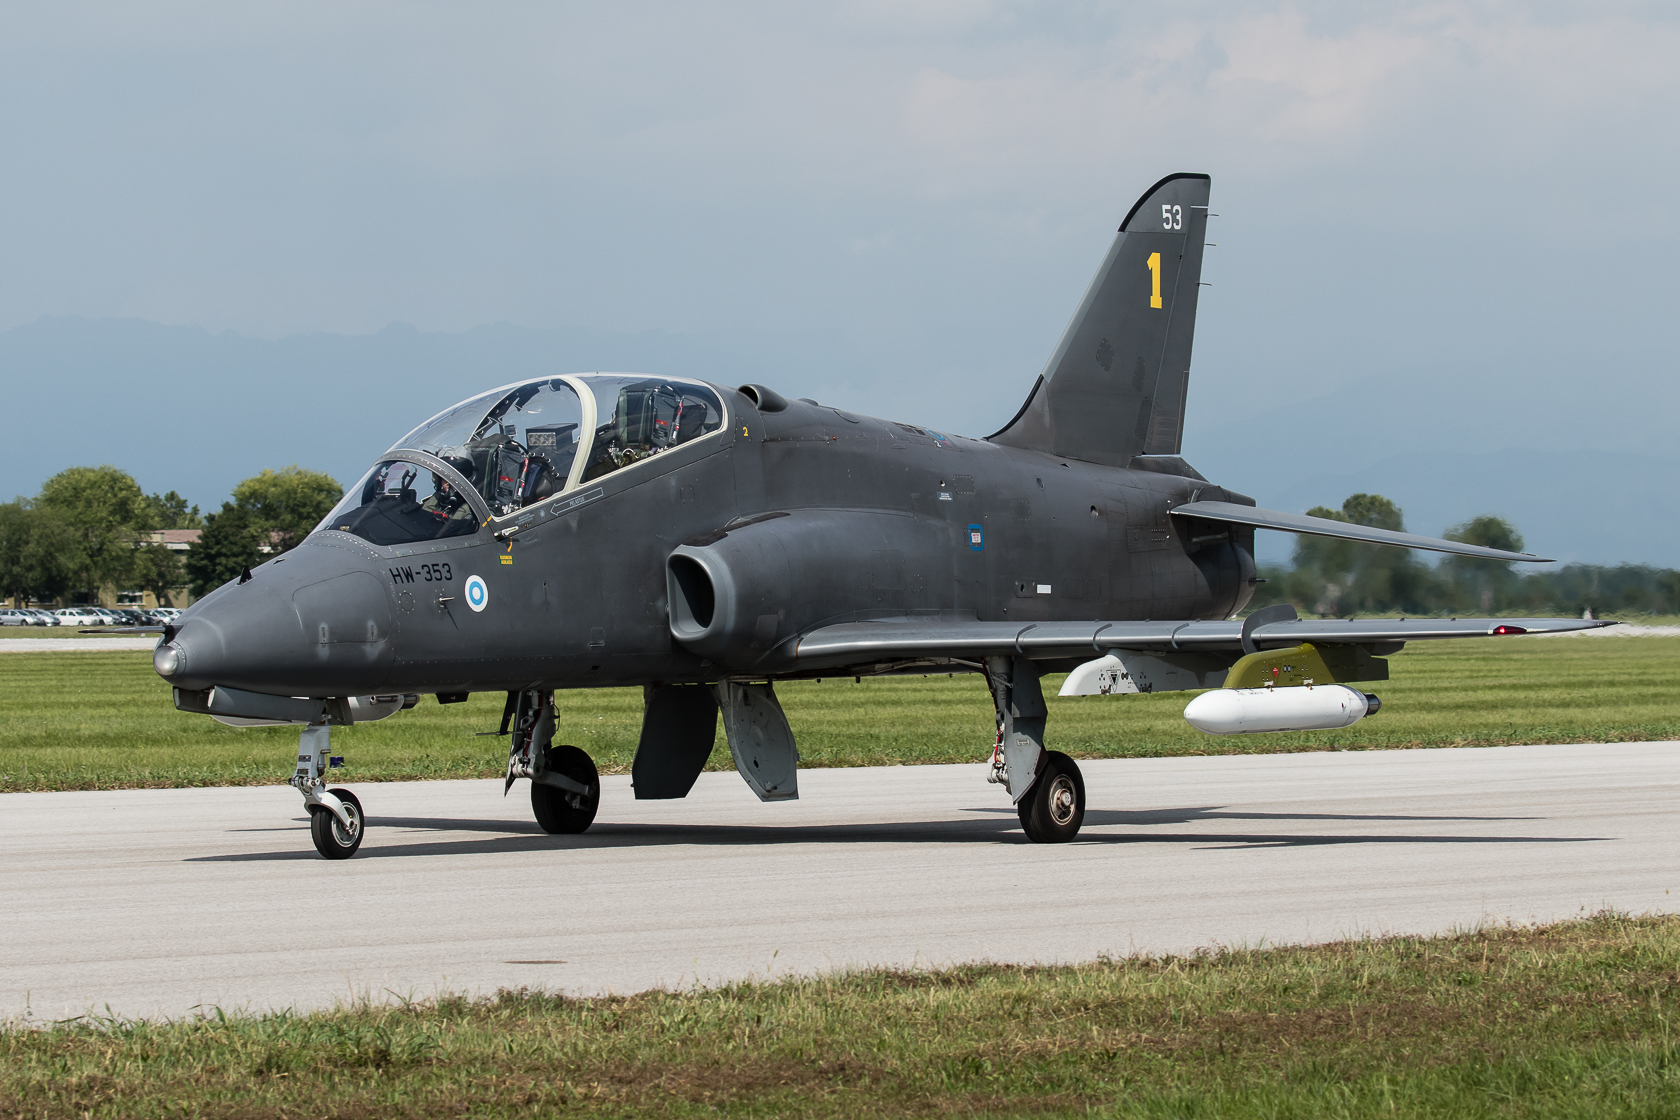 finland - air force british aerospace hawk 51a hw-353 - 1 (cn 312405) (22064831846).jpg